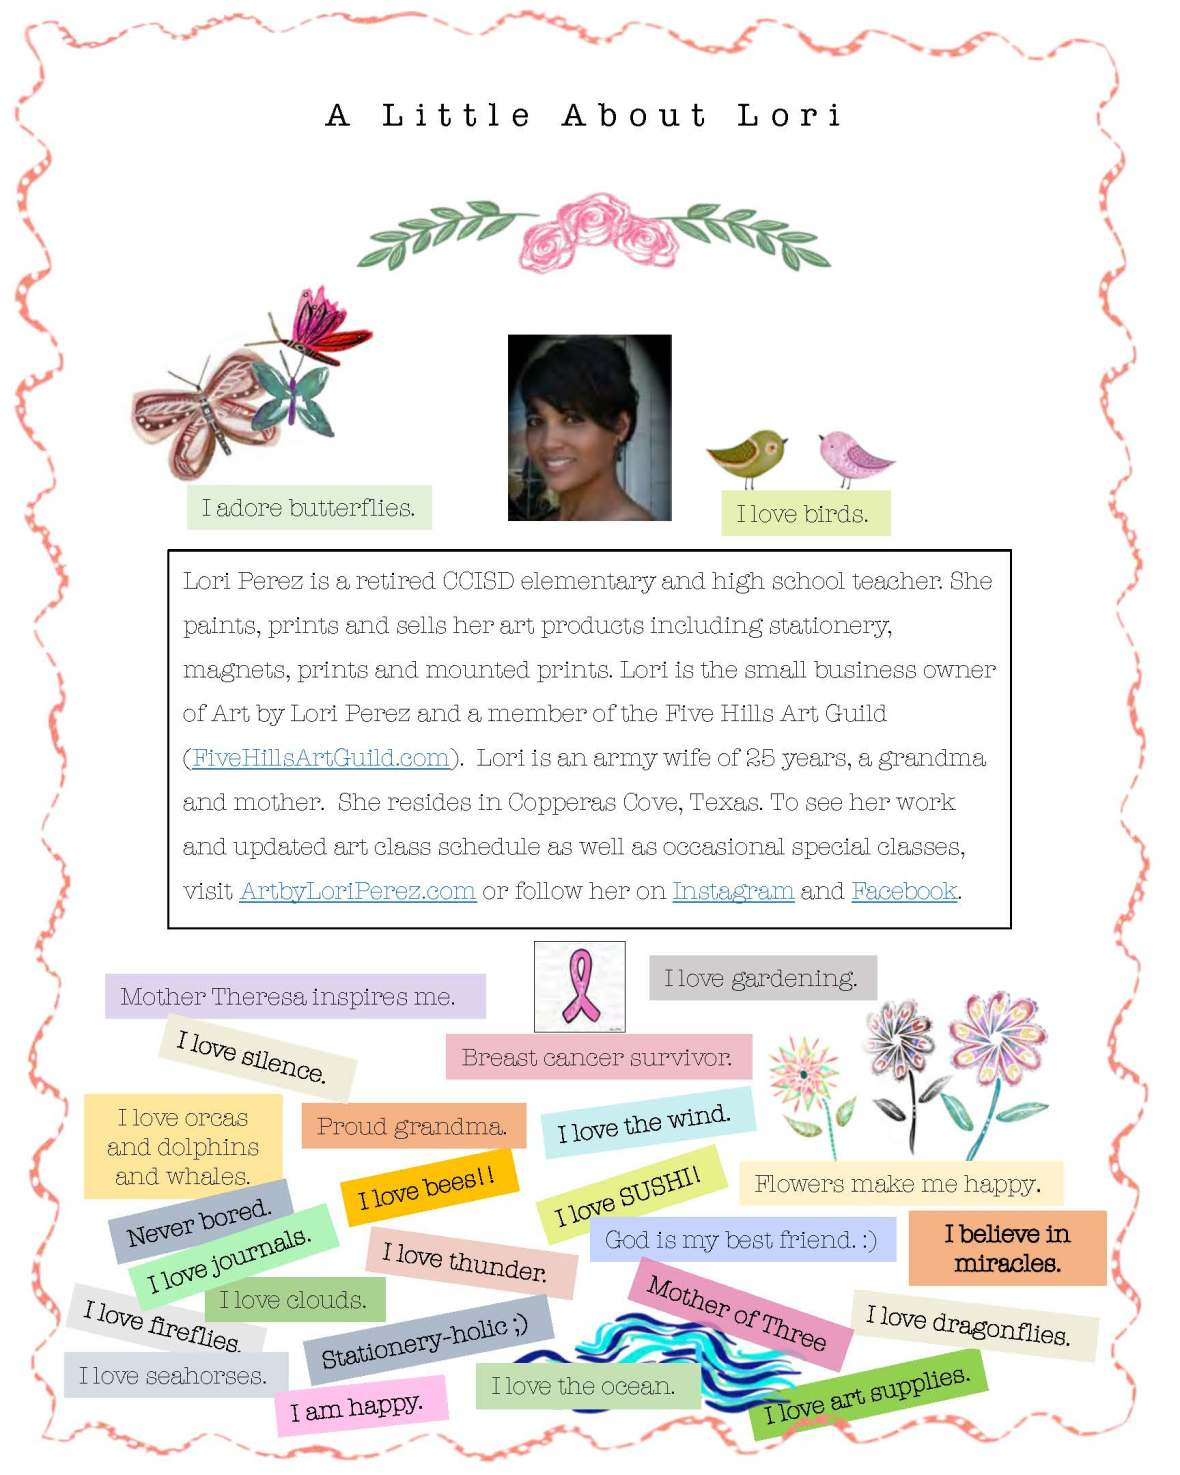 JPEG Compressed prot. FINAL REVISION FULL PDF Lori Perez Jan to May for ADVERTISEMENT._Page_5